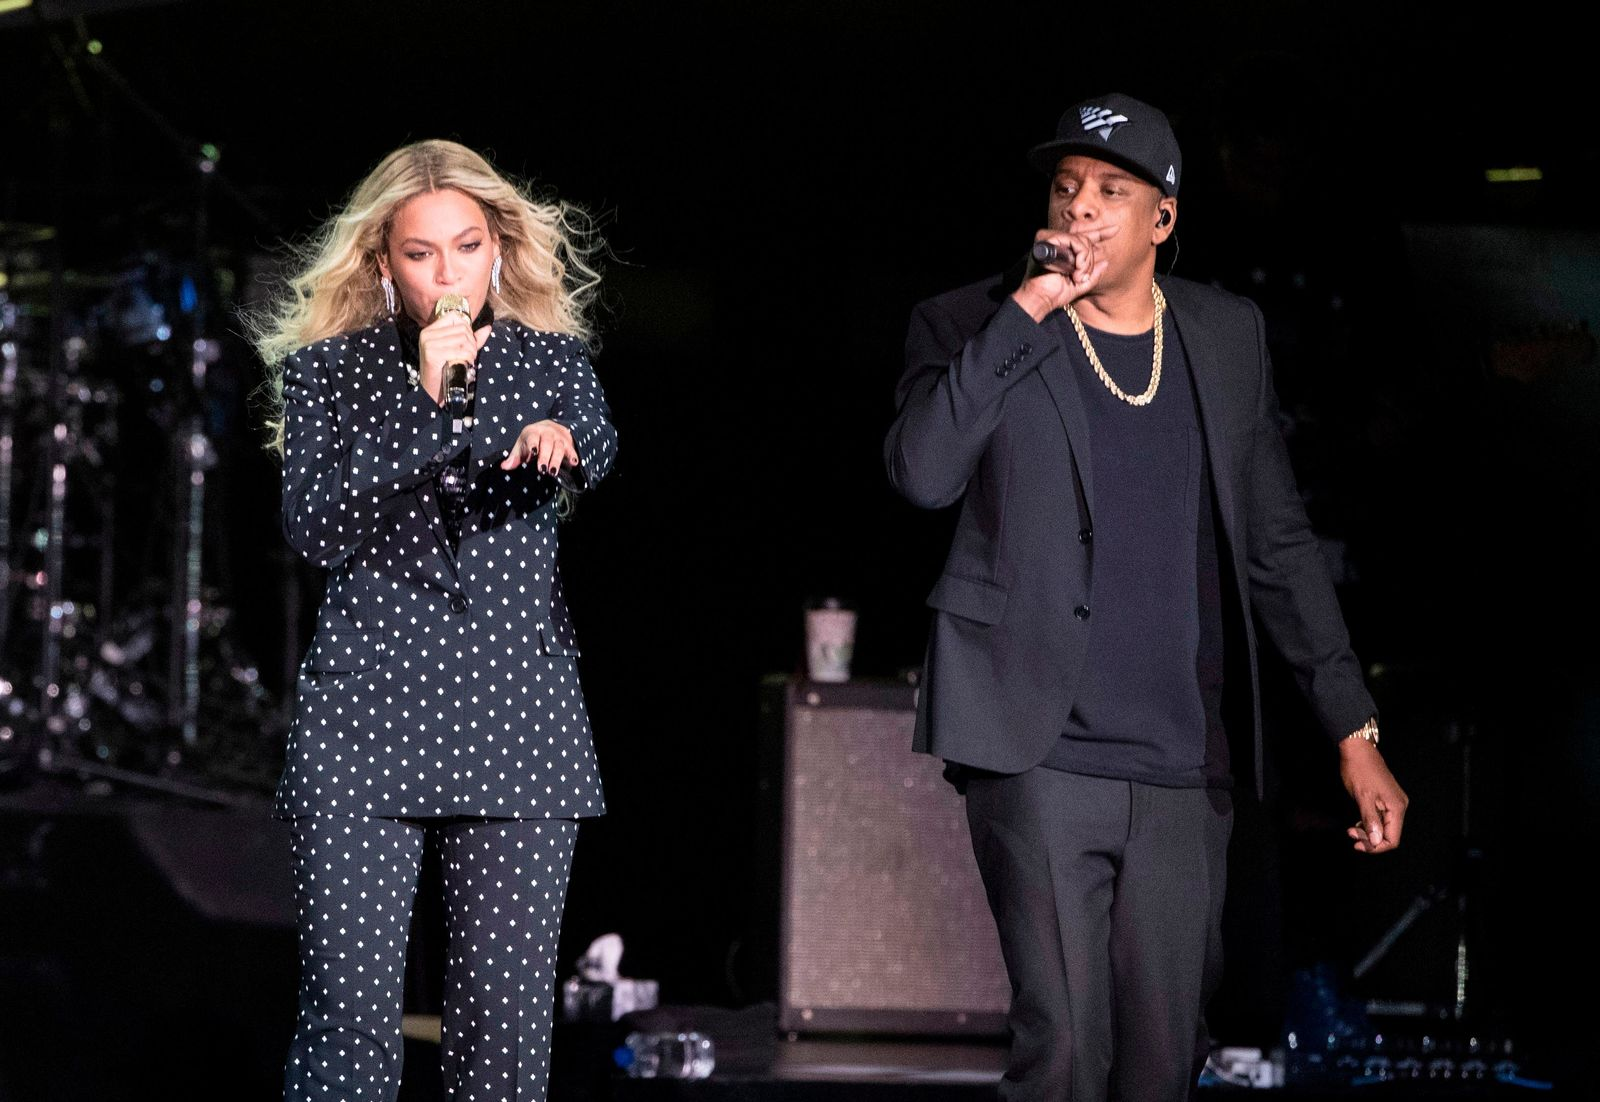 FILE - In this Nov. 4, 2016 file photo, Beyonce and Jay-Z perform during a Democratic presidential candidate Hillary Clinton campaign rally in Cleveland. (AP Photo/Matt Rourke, File)